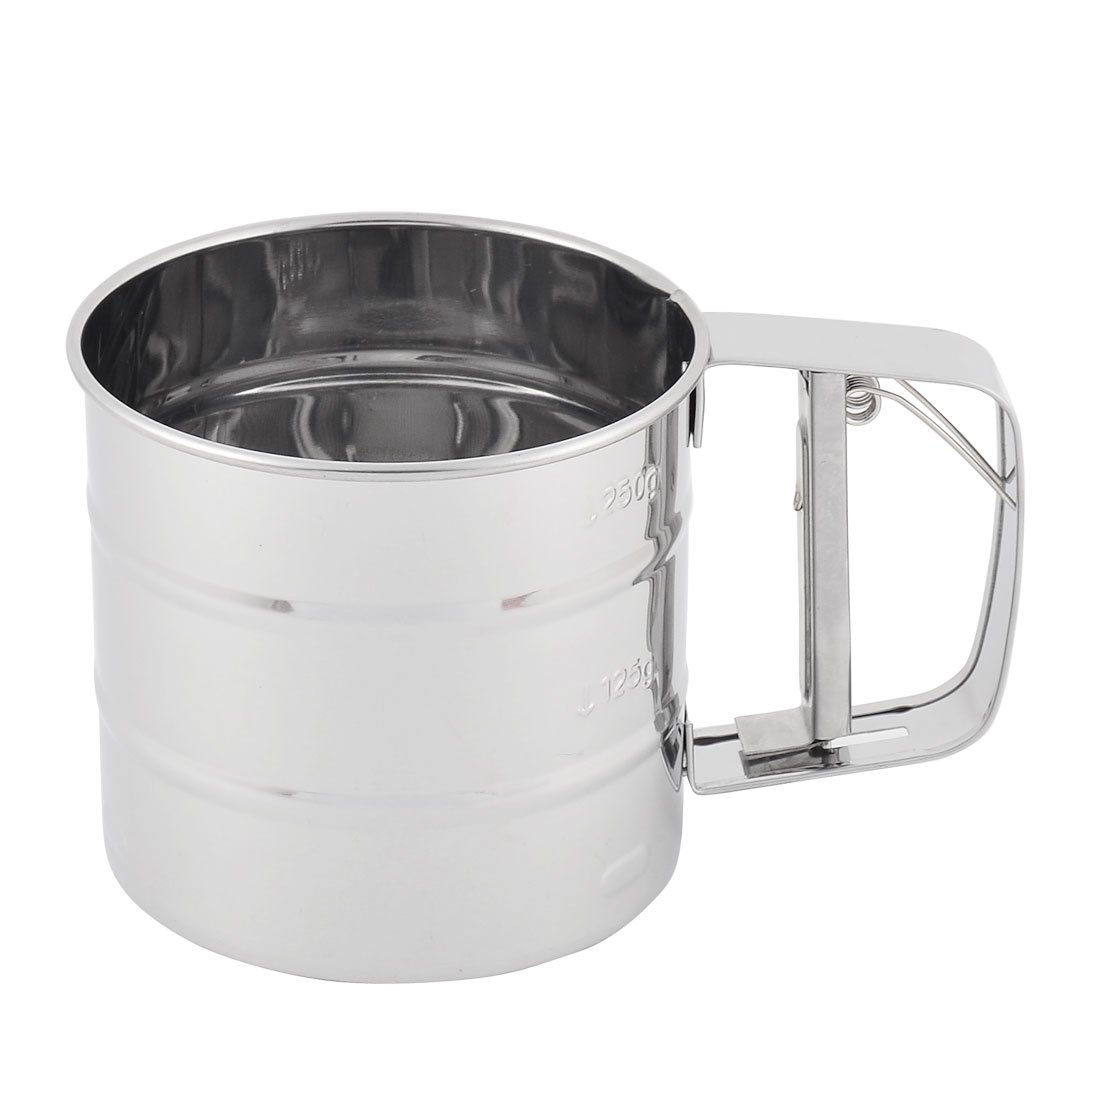 uxcell Metal Baking Trigger Handle Flour Sugar Mesh Sifter Shaker Silver Tone a16030800ux1142